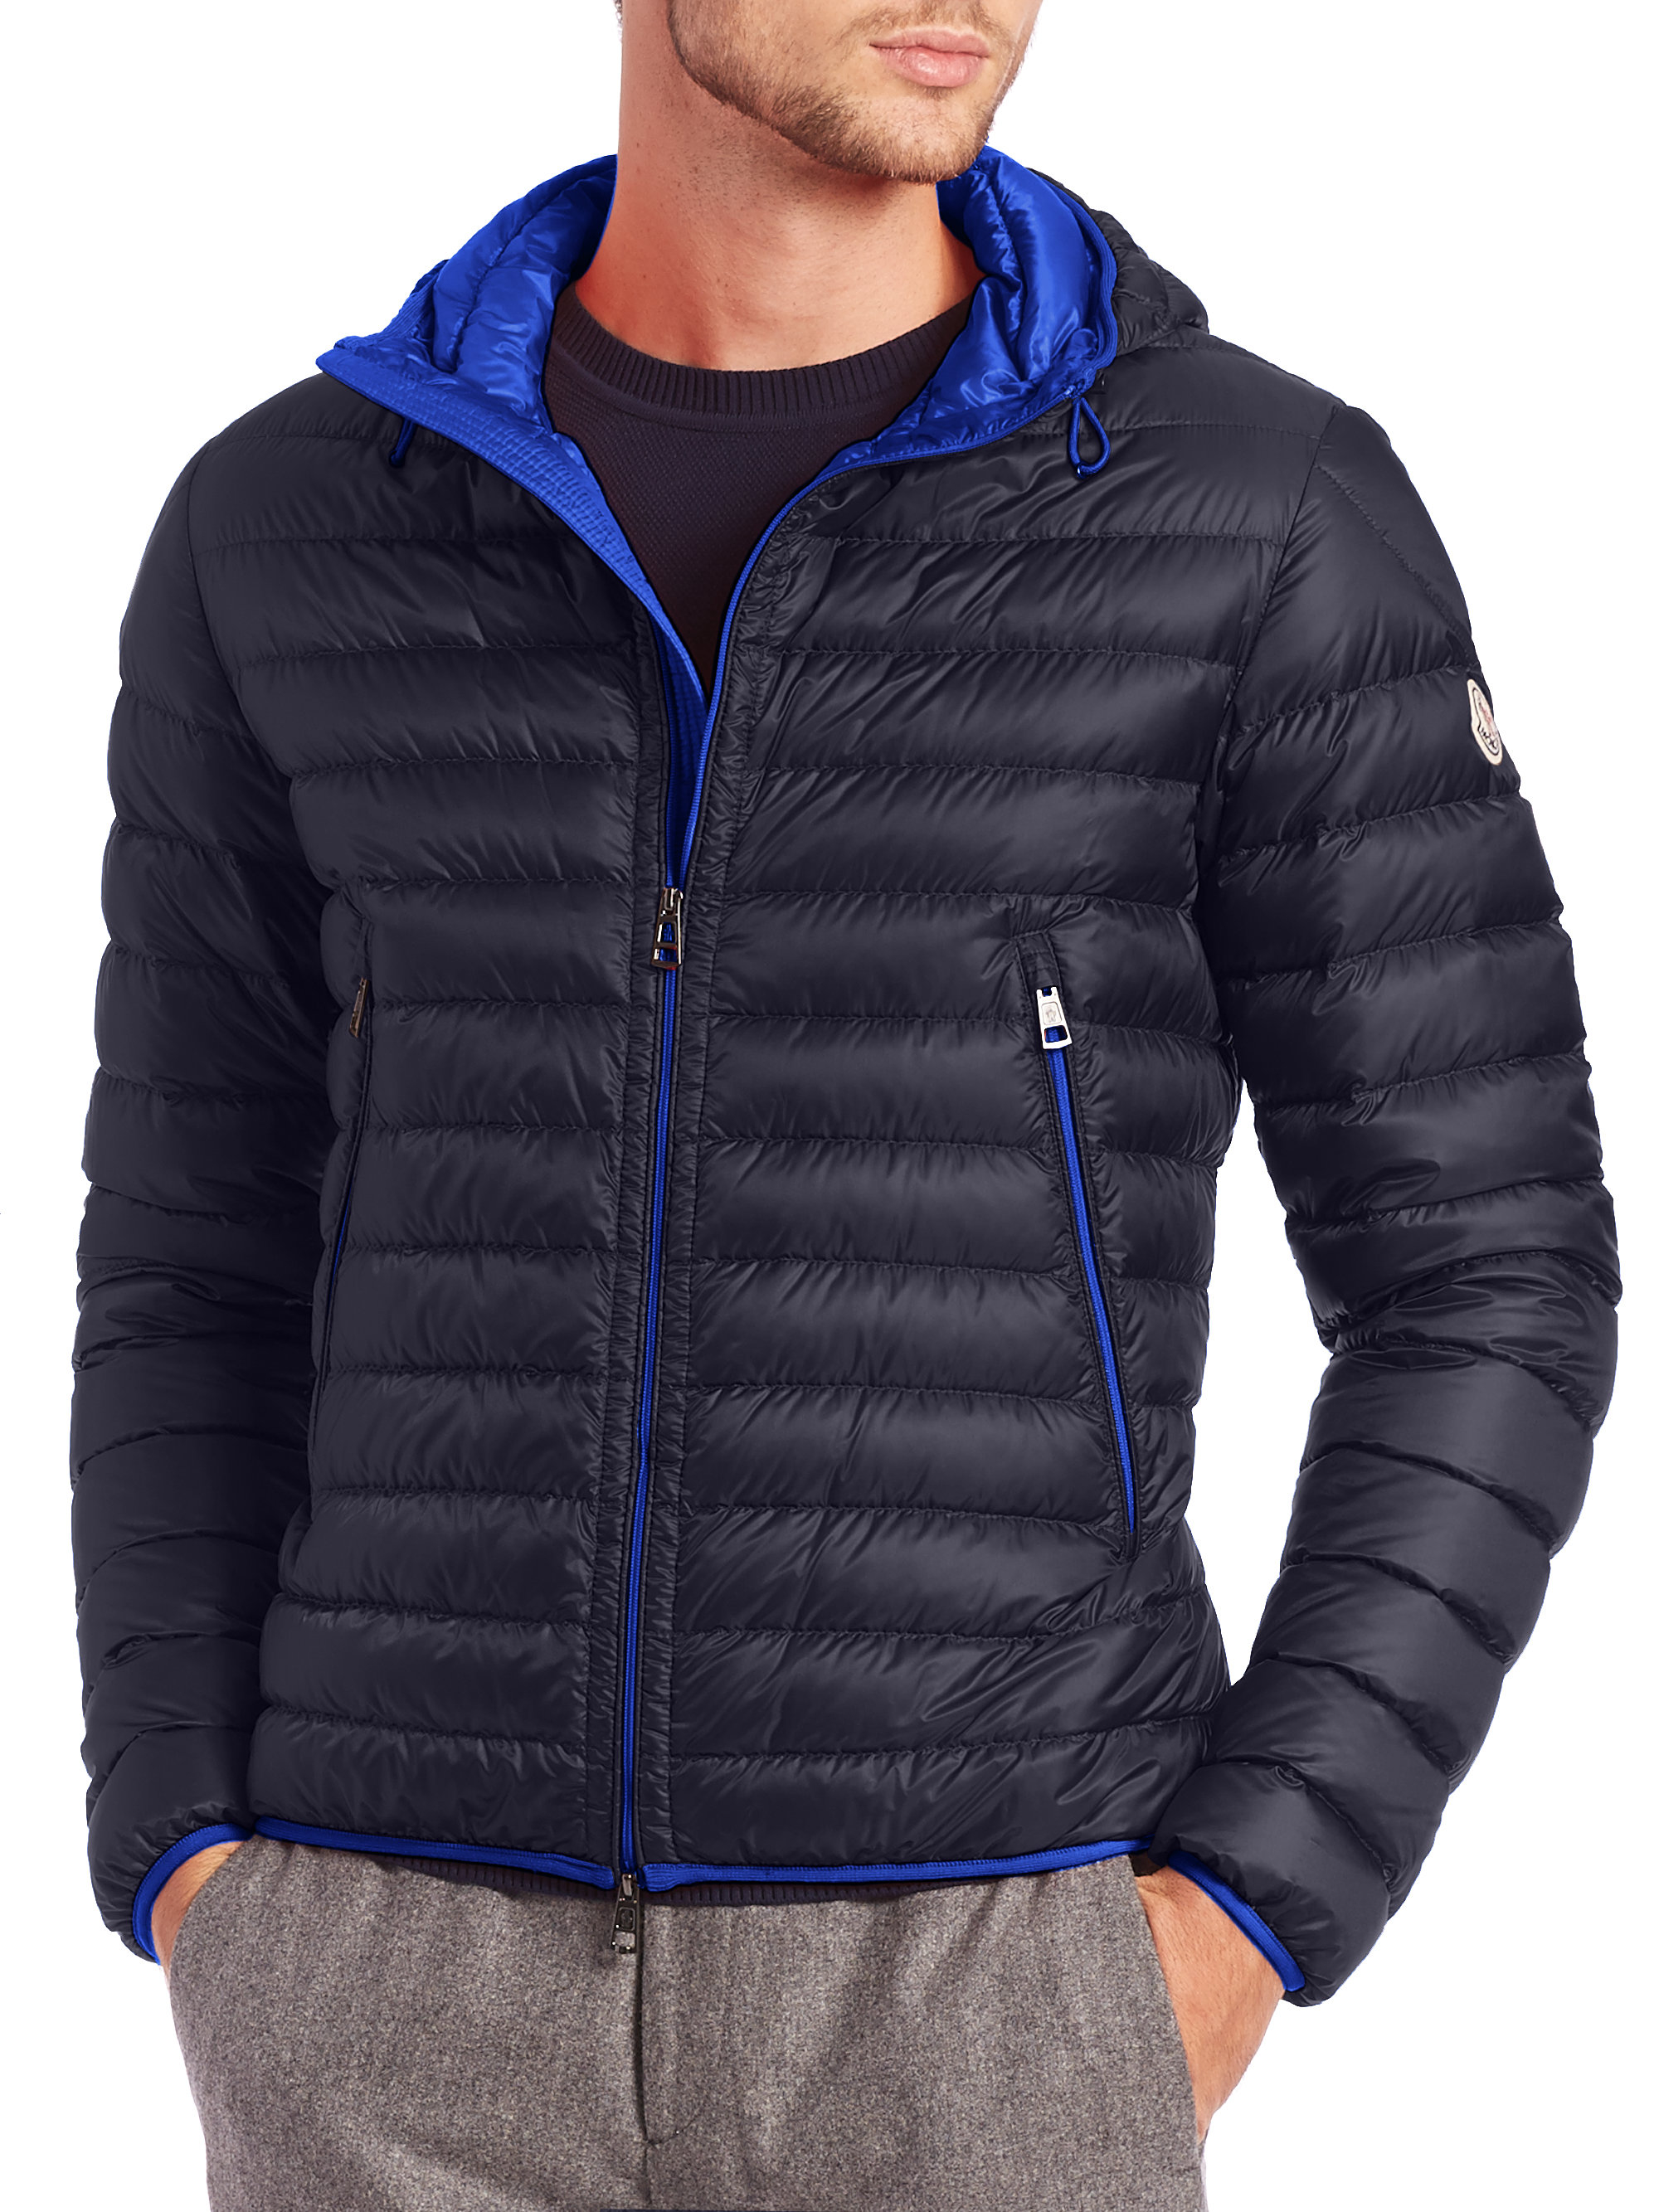 moncler mir puffer jacket in blue for men lyst. Black Bedroom Furniture Sets. Home Design Ideas